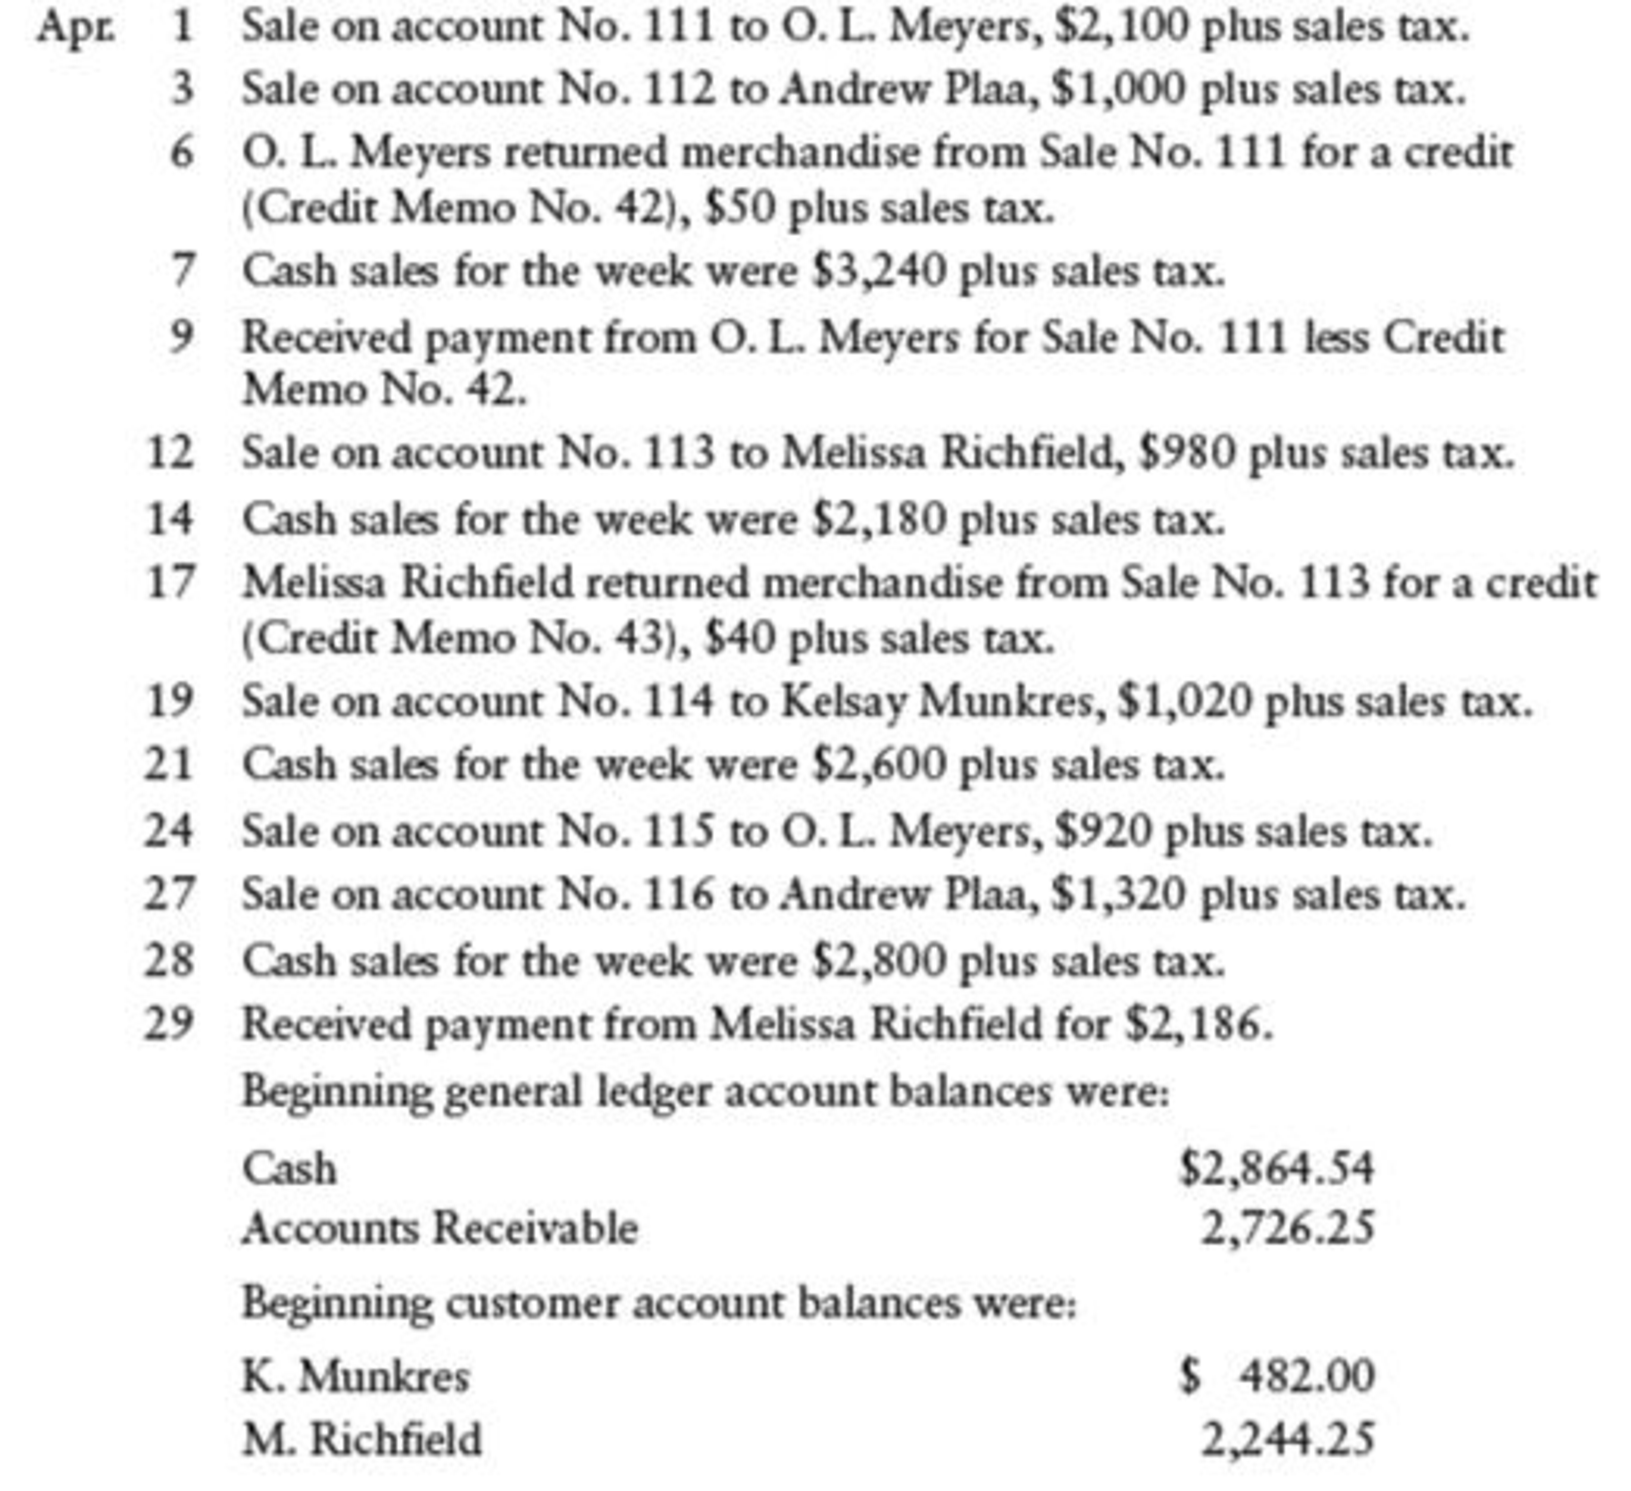 Chapter 10, Problem 11SPB, SALES AND CASH RECEIPTS TRANSACTIONS Paul Jackson owns a retail business. The following sales,